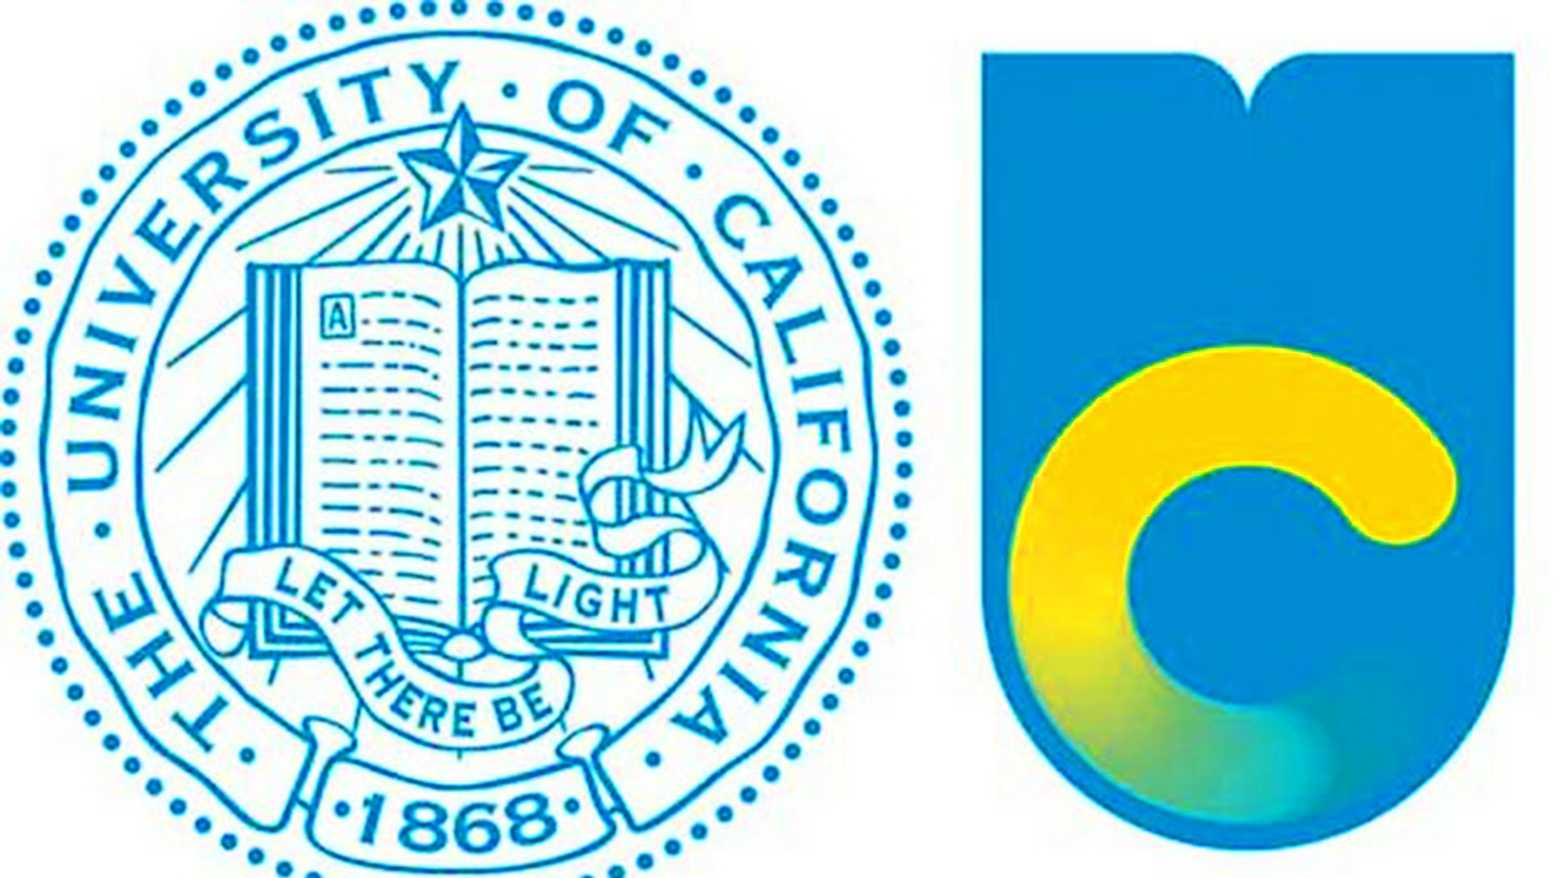 The UC's old logo is on the left and new logo on the right.